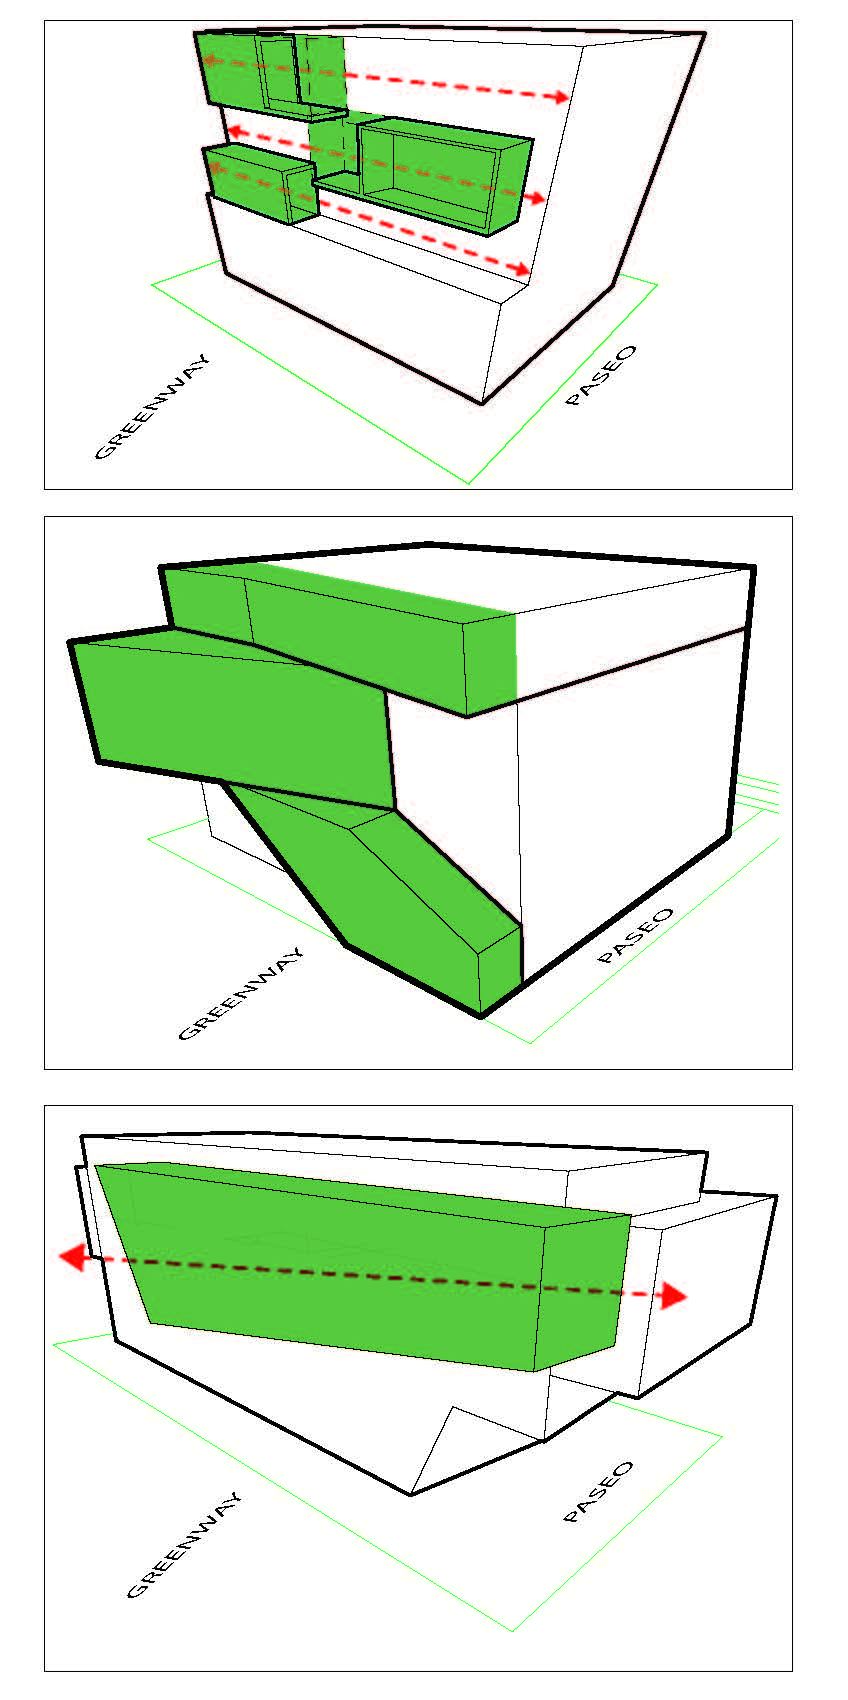 Green Space Diagram_Perspective.jpg